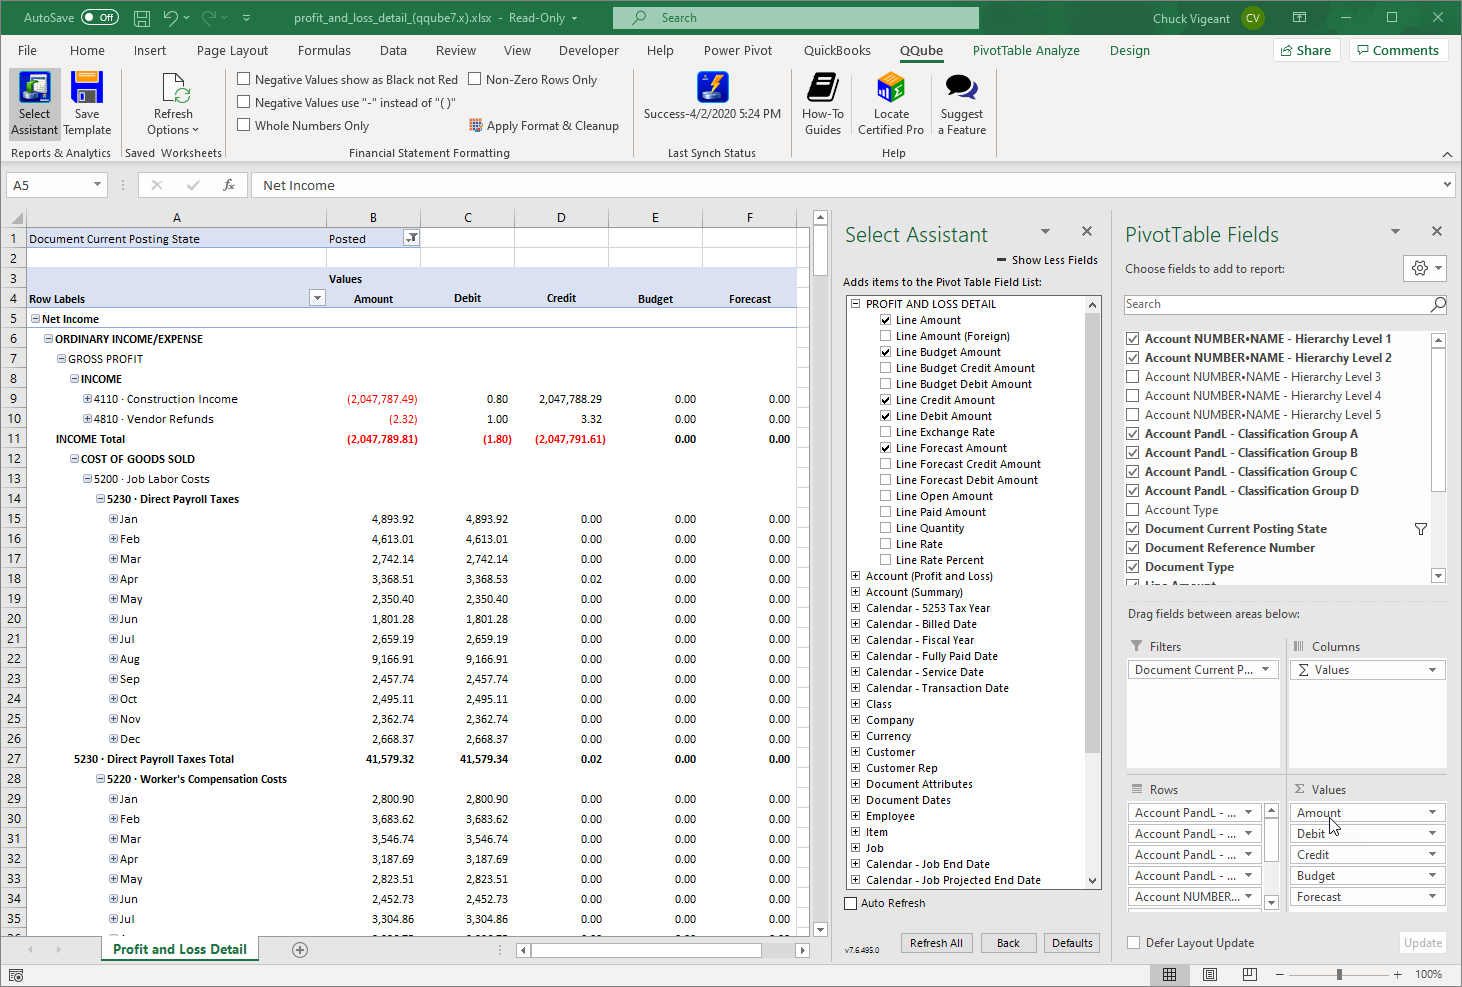 QuickBooks Profit and Loss Detail using QQube with Excel